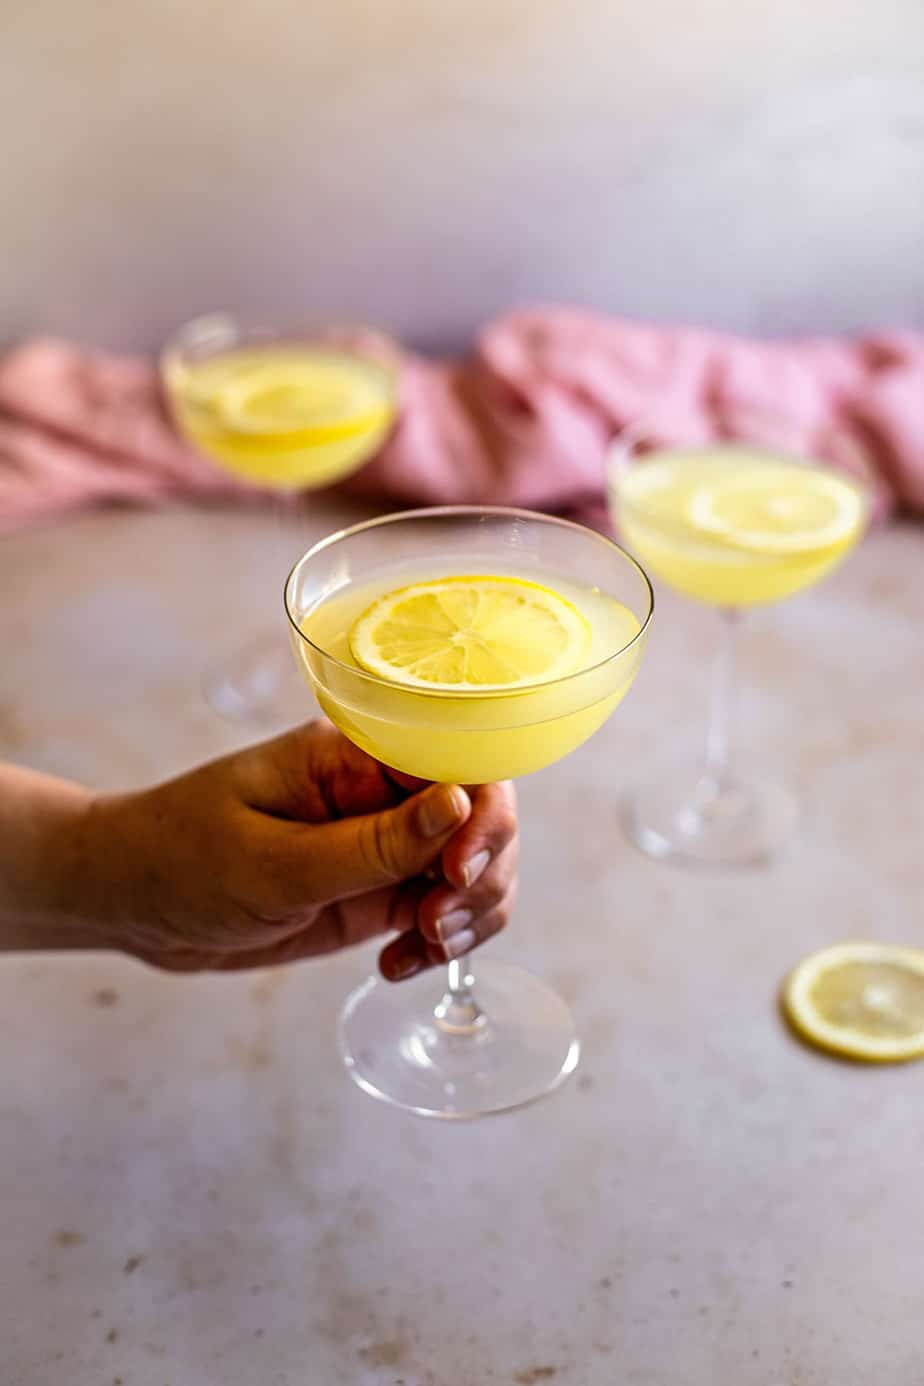 a hand holding a coupe glass with a limoncello martini in it